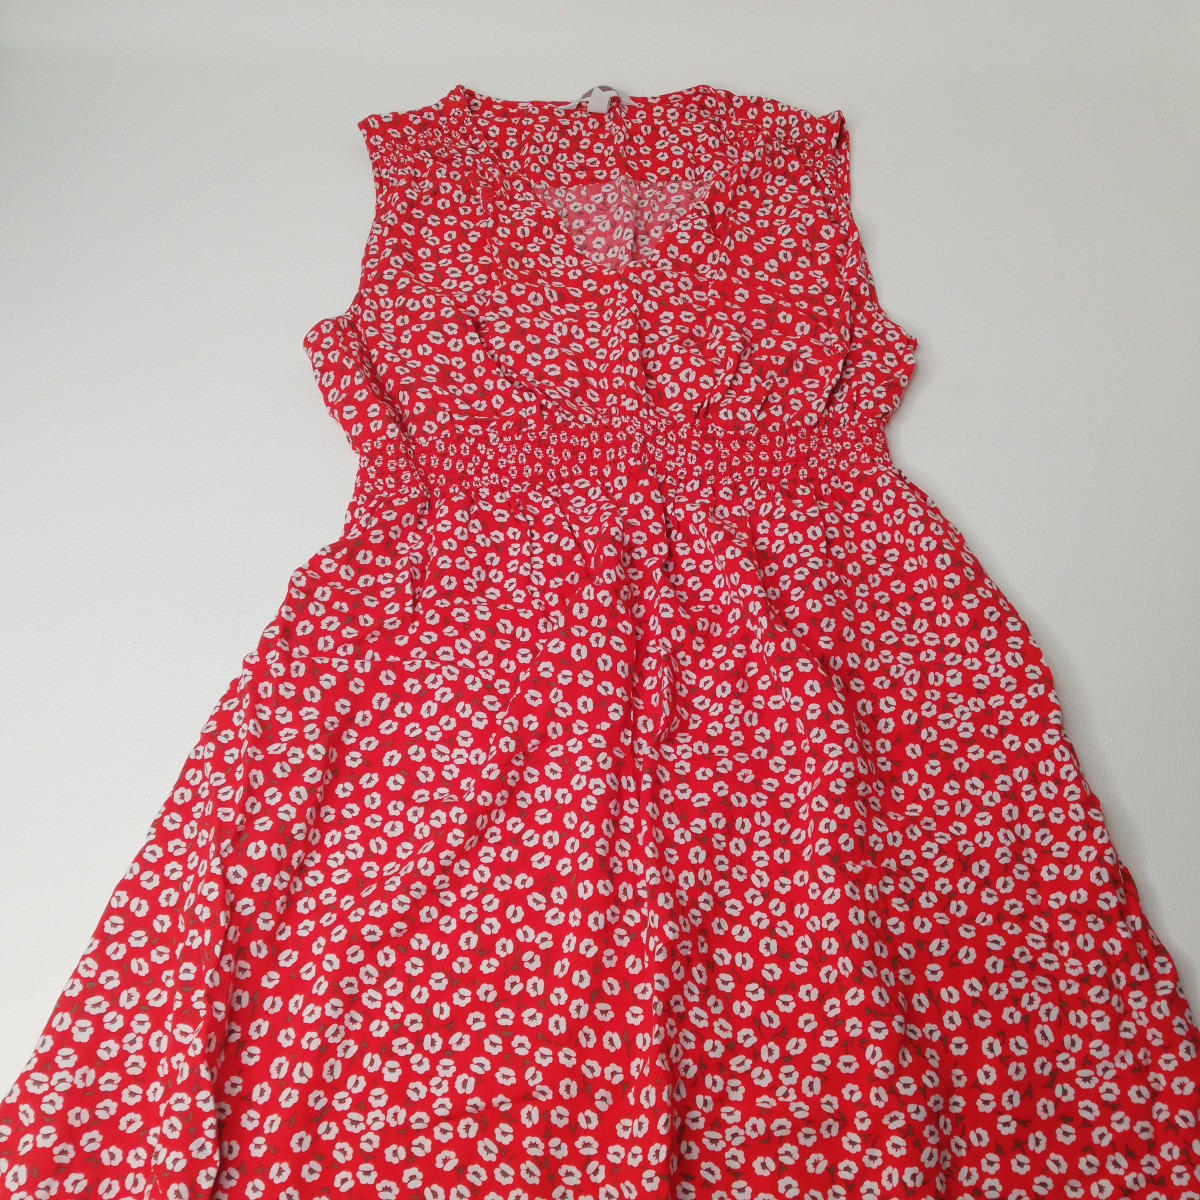 Robe rouge fleurie Taille M - photo 6